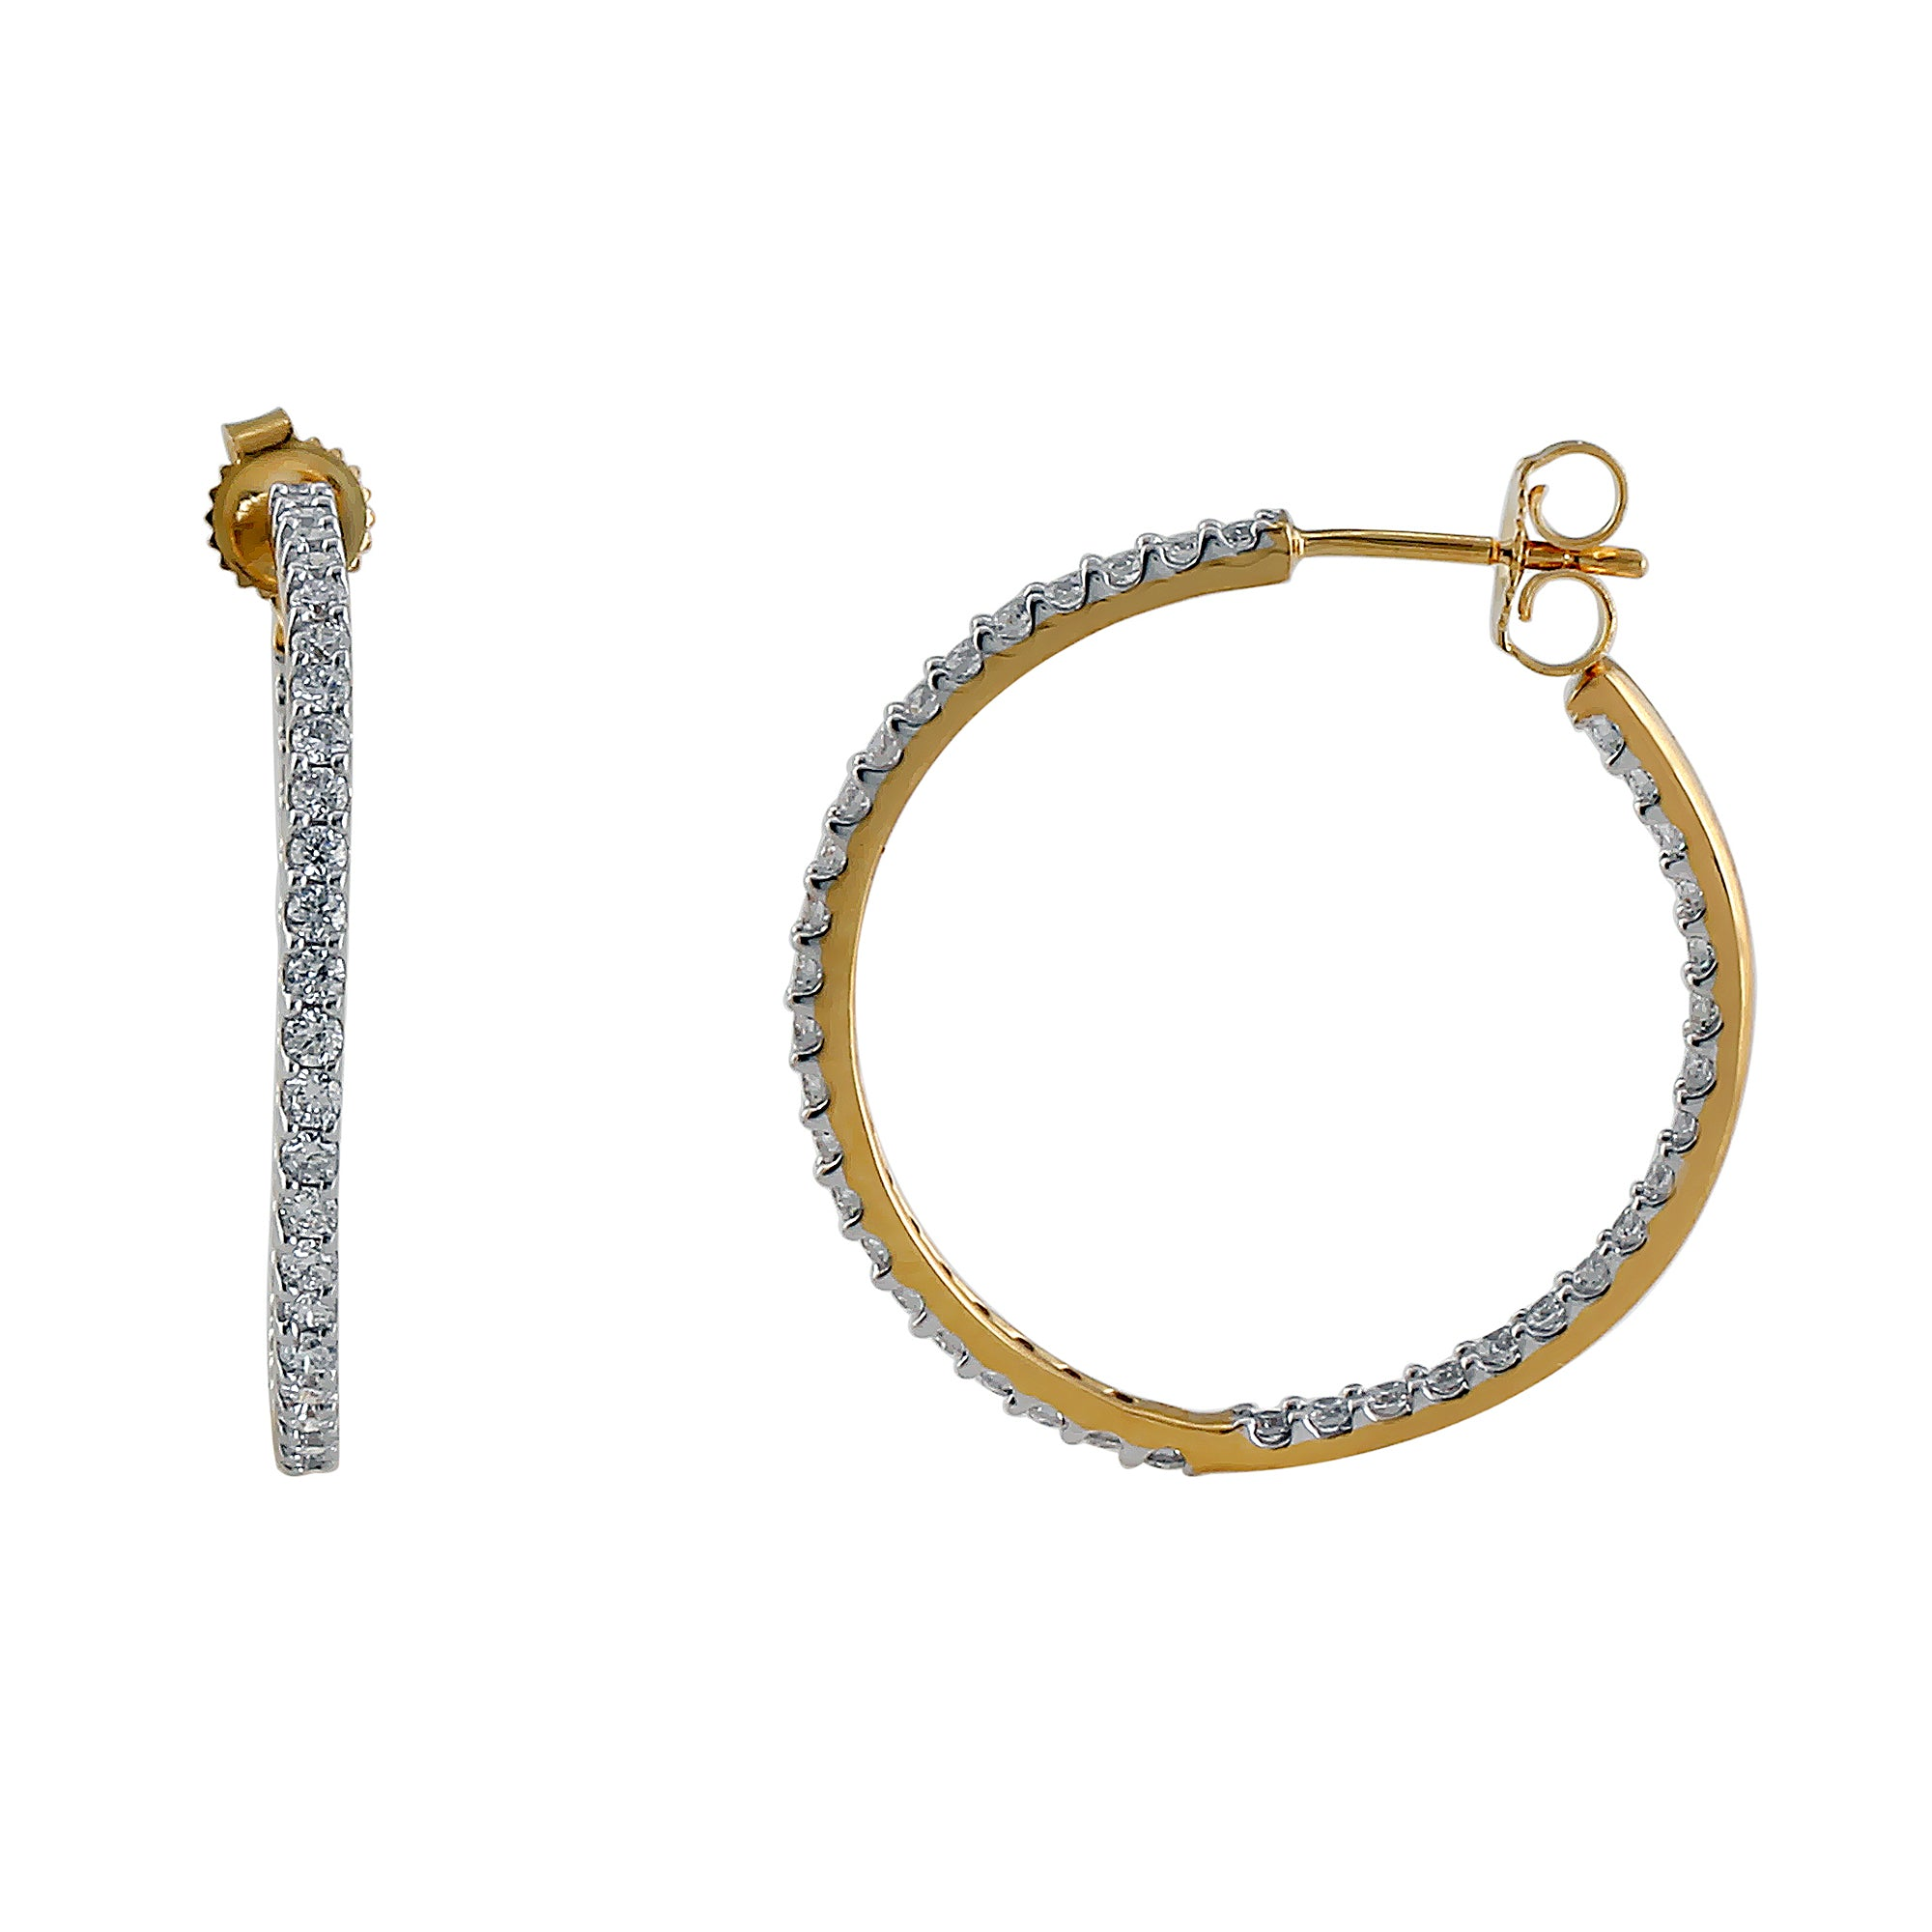 Halo Lab-Grown Diamond Hoop Earrings - 14k Gold Over Sterling Silver (1.00 ct. tw.)